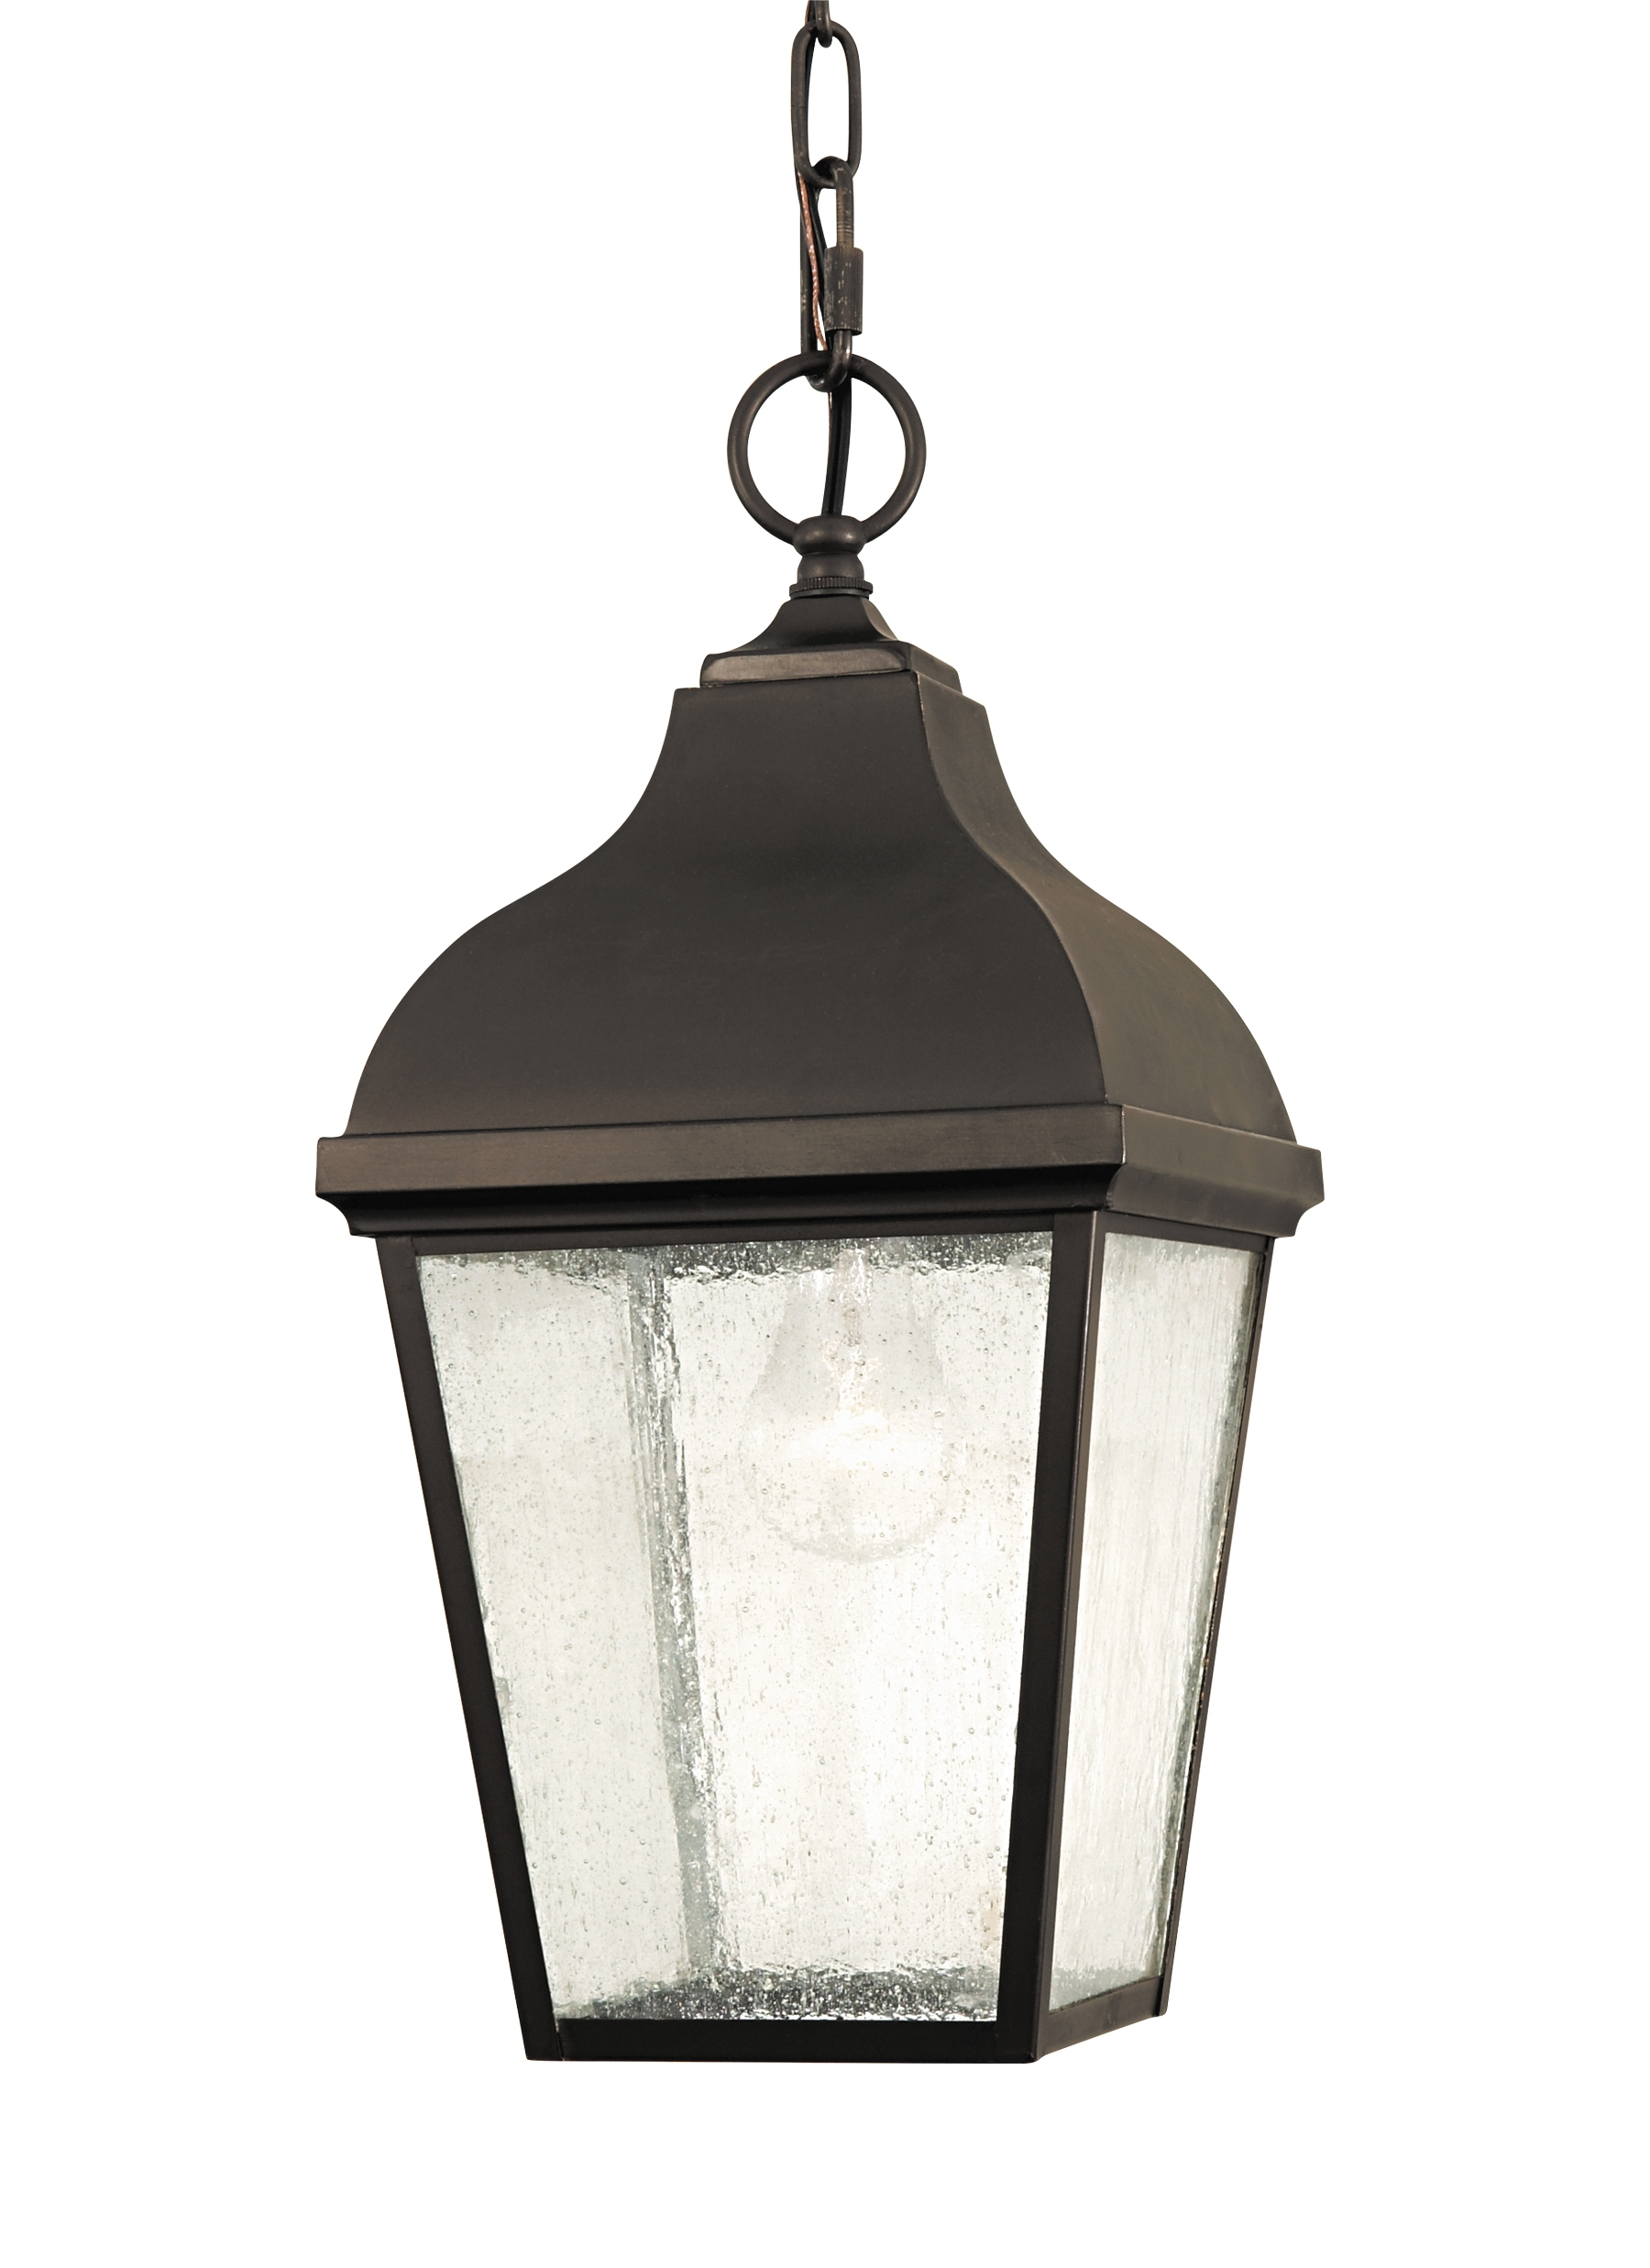 Ol4011Orb,1 – Light Pendant,oil Rubbed Bronze Within Well Known Outdoor Hanging Light Pendants (View 17 of 20)